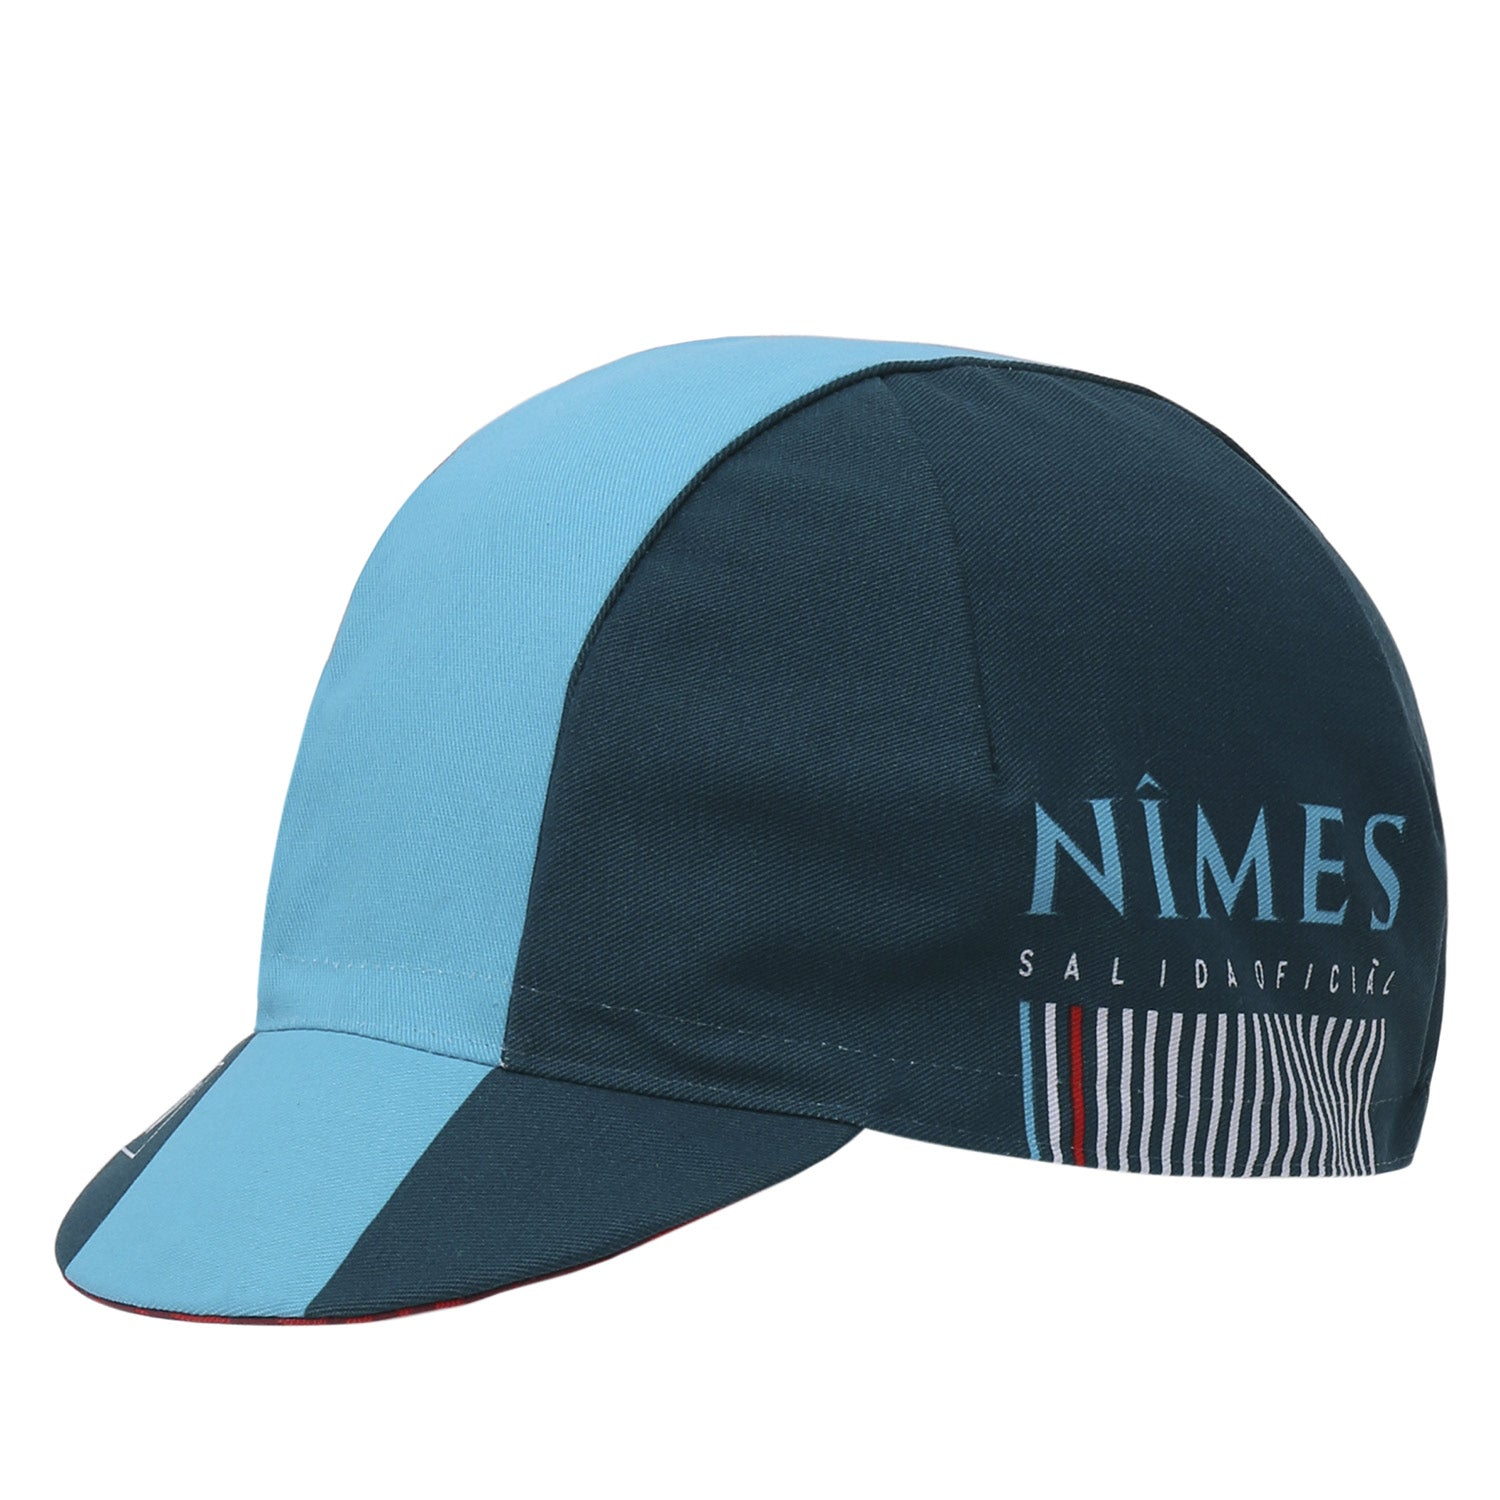 La Vuelta 2017 Nîmes Cotton Cycling Cap